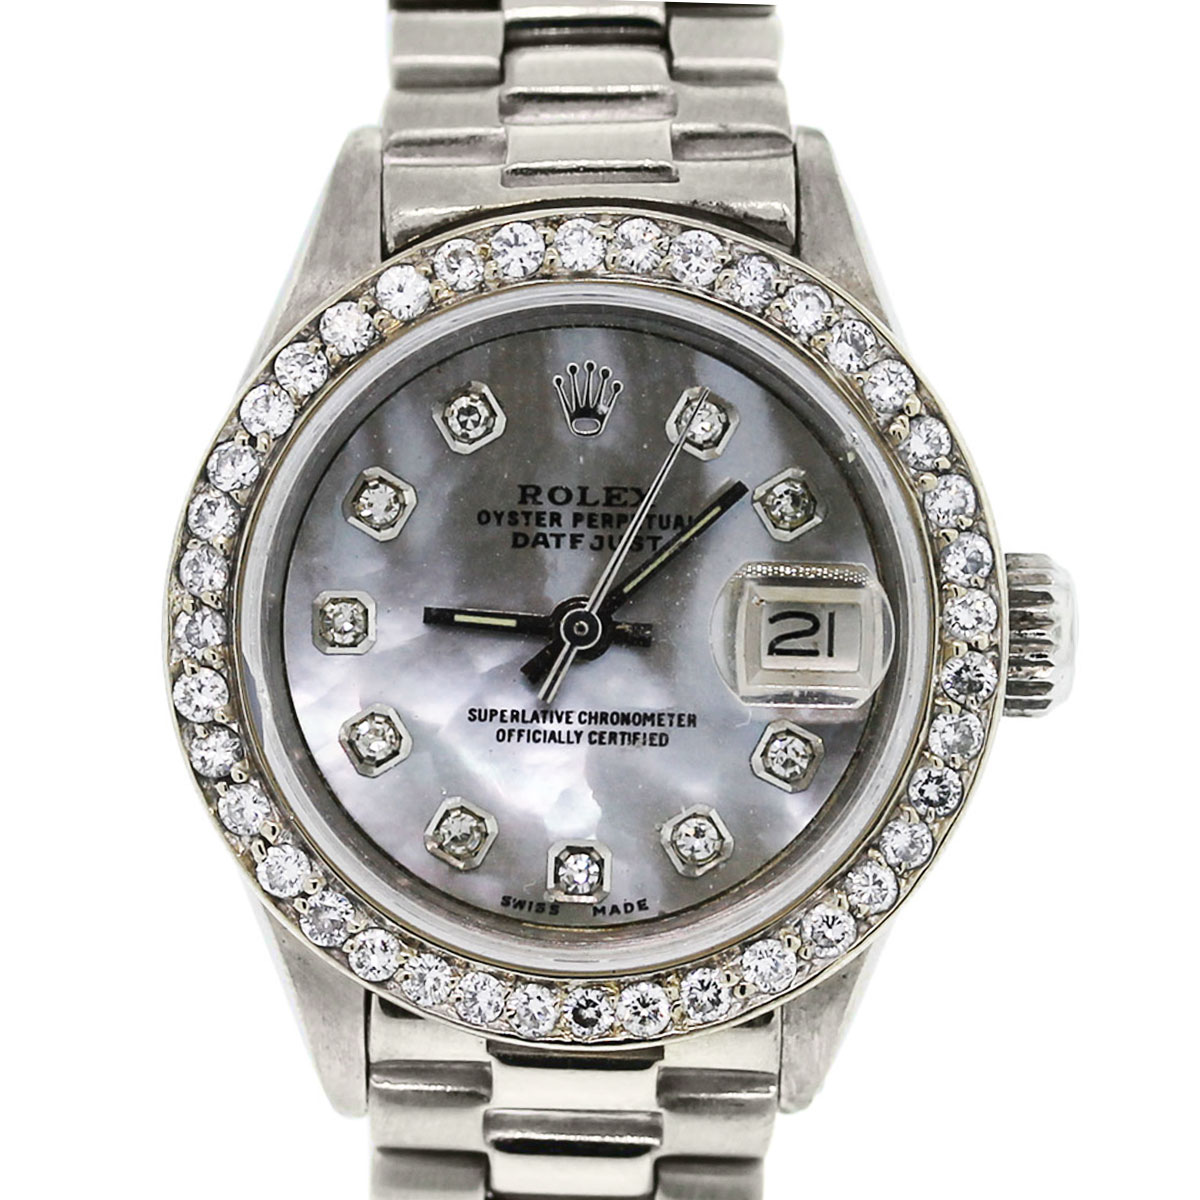 You are viewing this Rolex Diamond Mother of Pearl Watch!